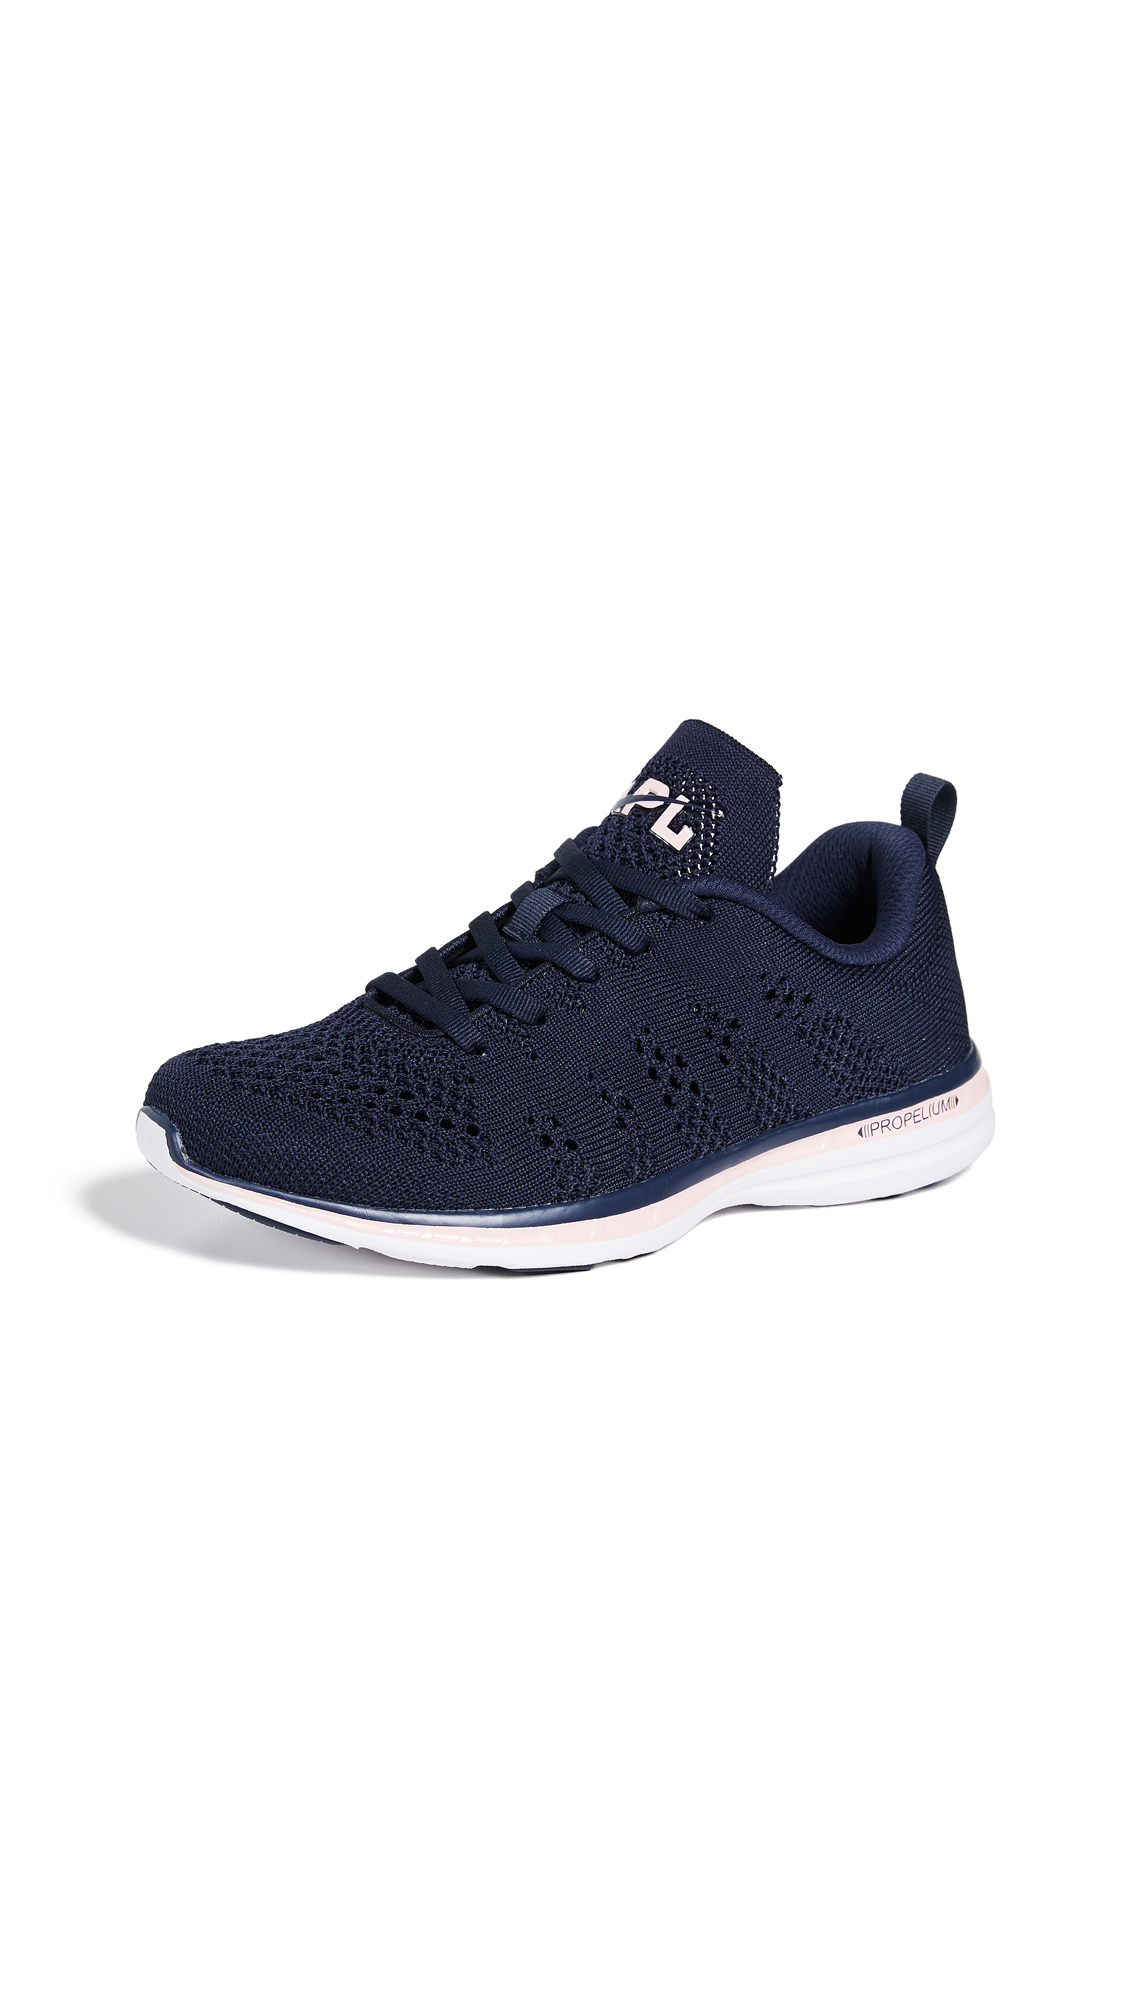 APL: Athletic Propulsion Labs TechLoom Pro Sneakers - Midnight/Gossamer Pink/White